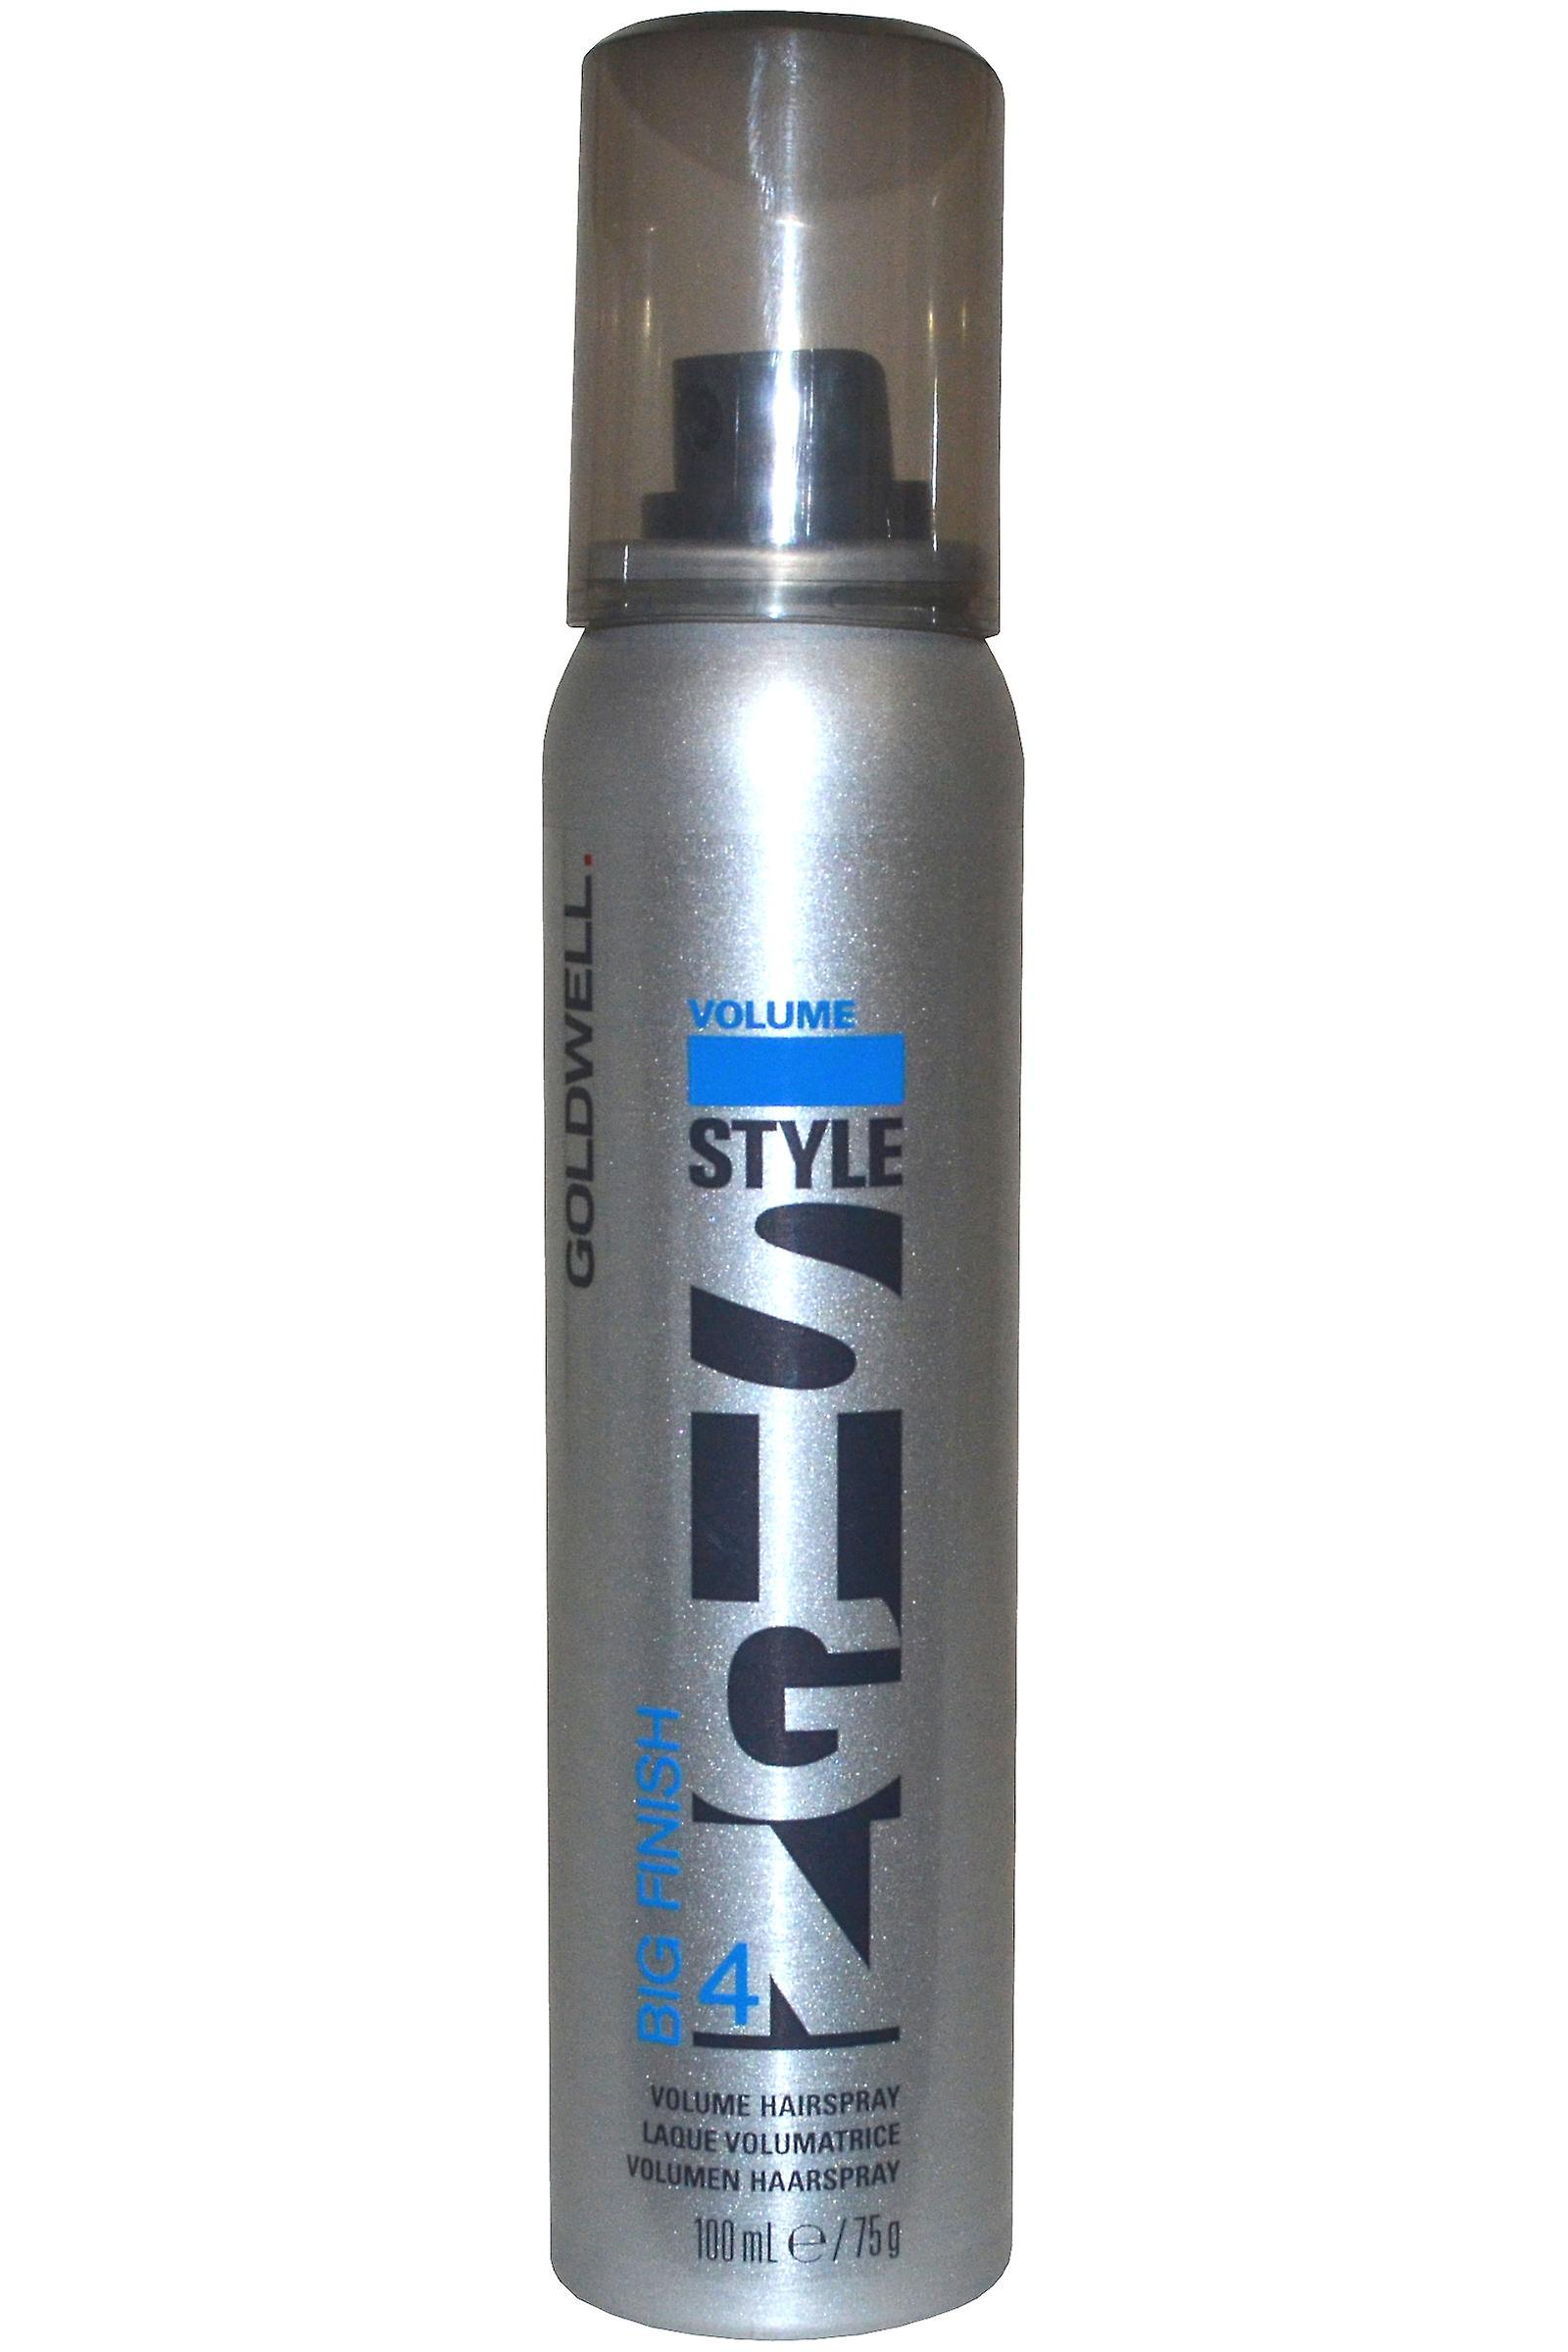 Stijl Sign door Goldwell Volume Hairspray Volume stijl 100ml grote Finish #4